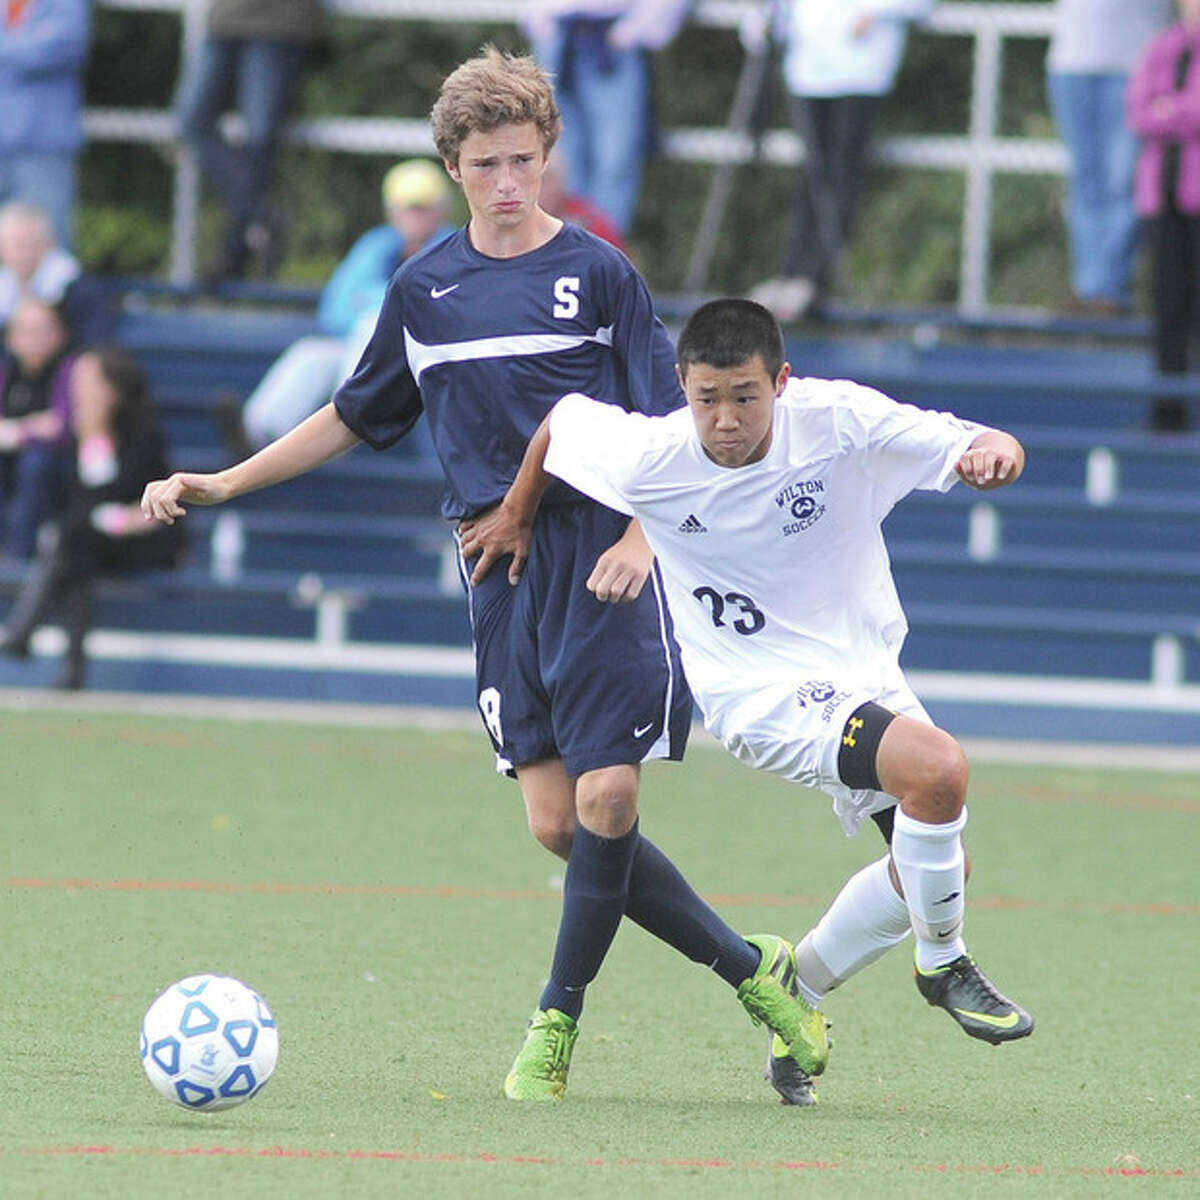 Hour photo/John Nash Wilton's Michael Lynch, right, gets around Staples' Michael Reid to track down a ball during the second half of Wednesday's FCIAC boys soccer game at Lilly Field in Wilton.